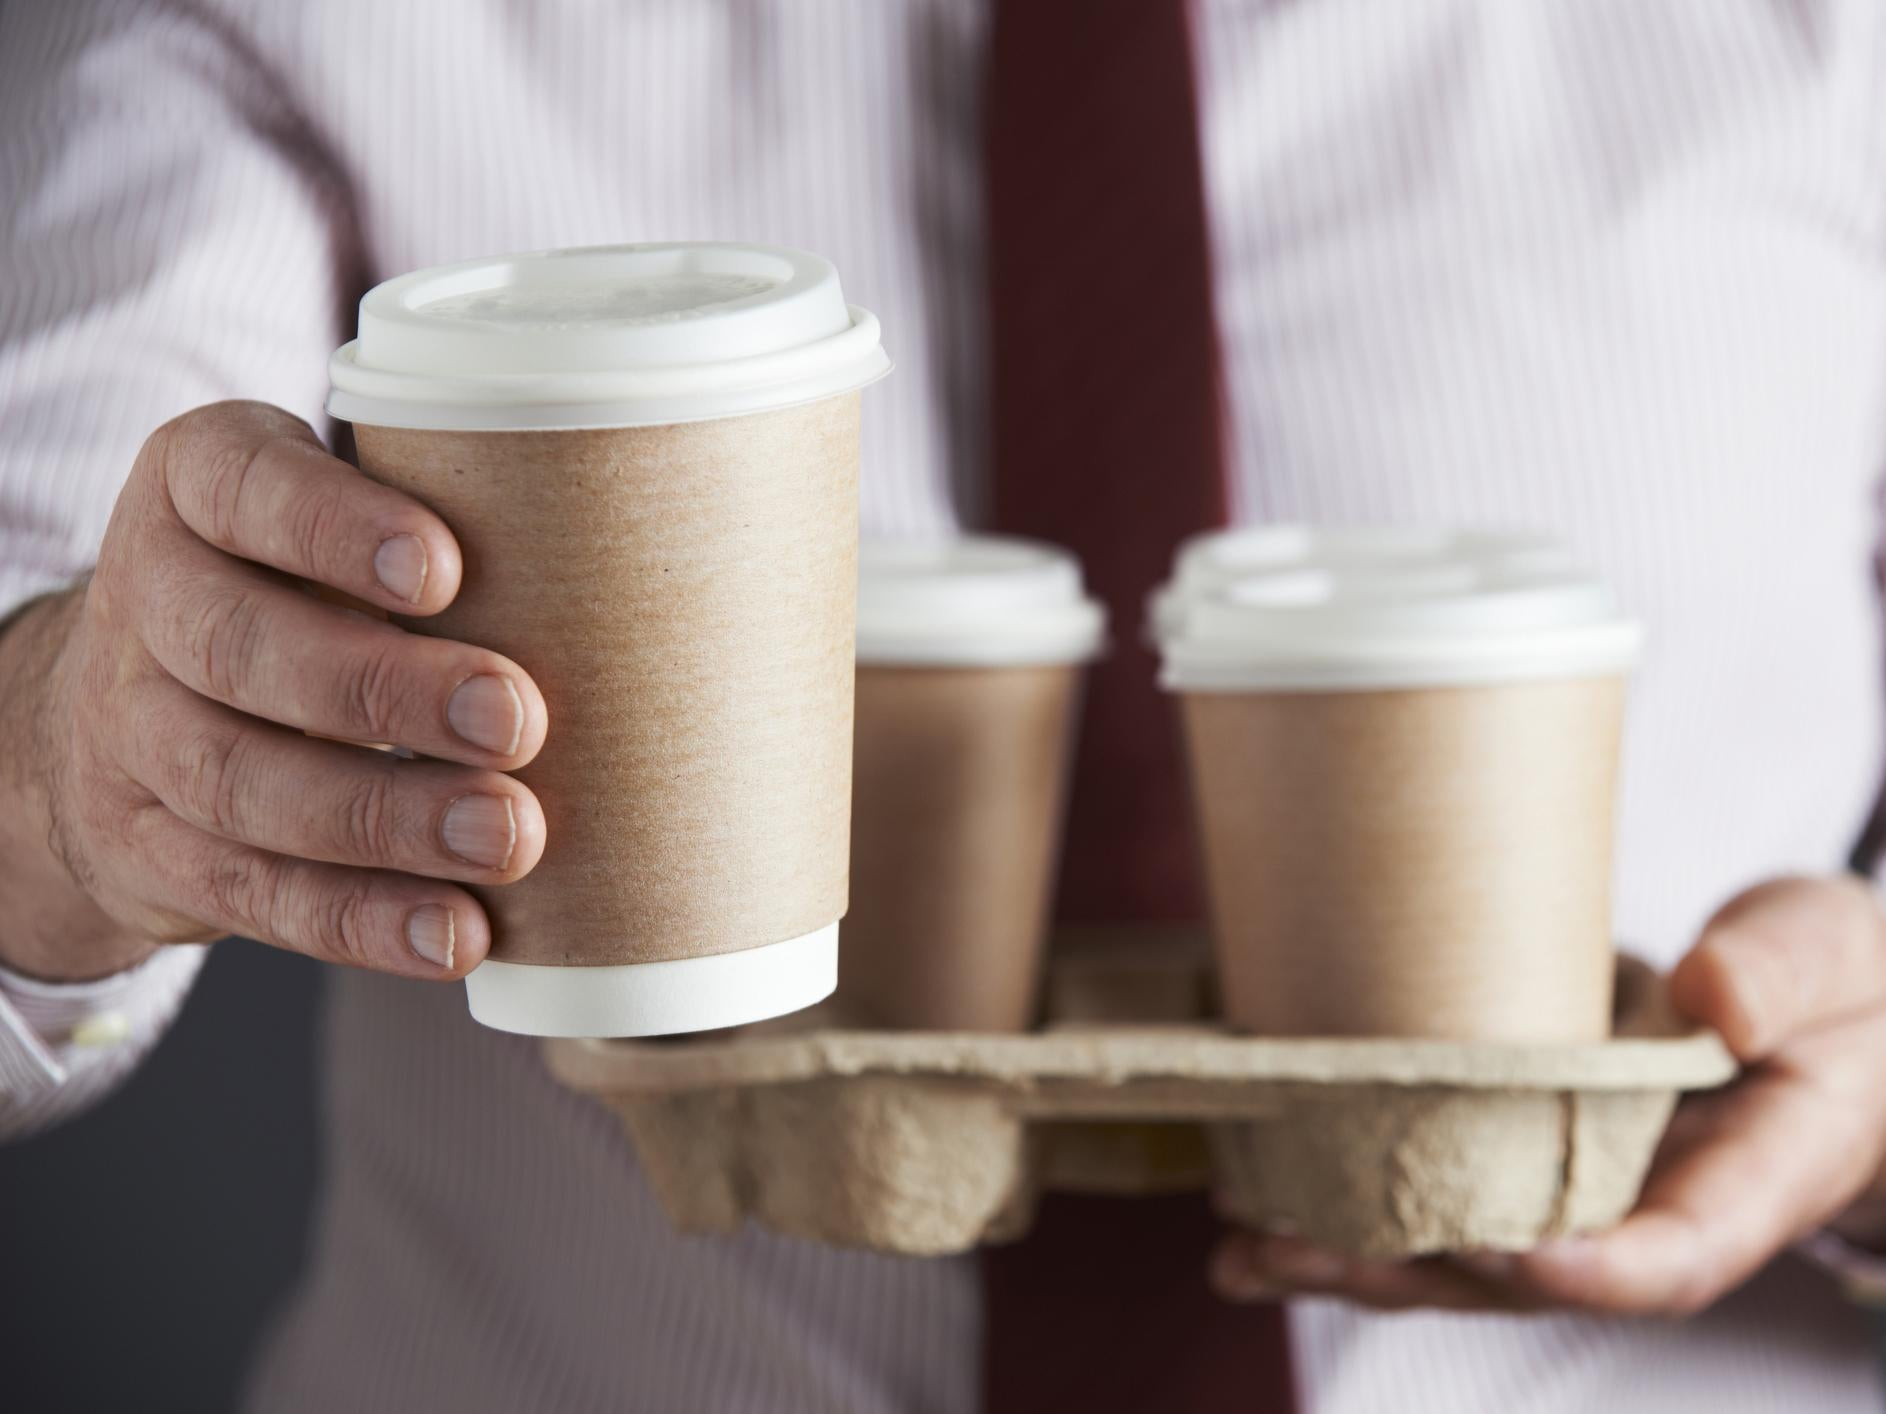 Disposable coffee cups: How big a problem are they for the